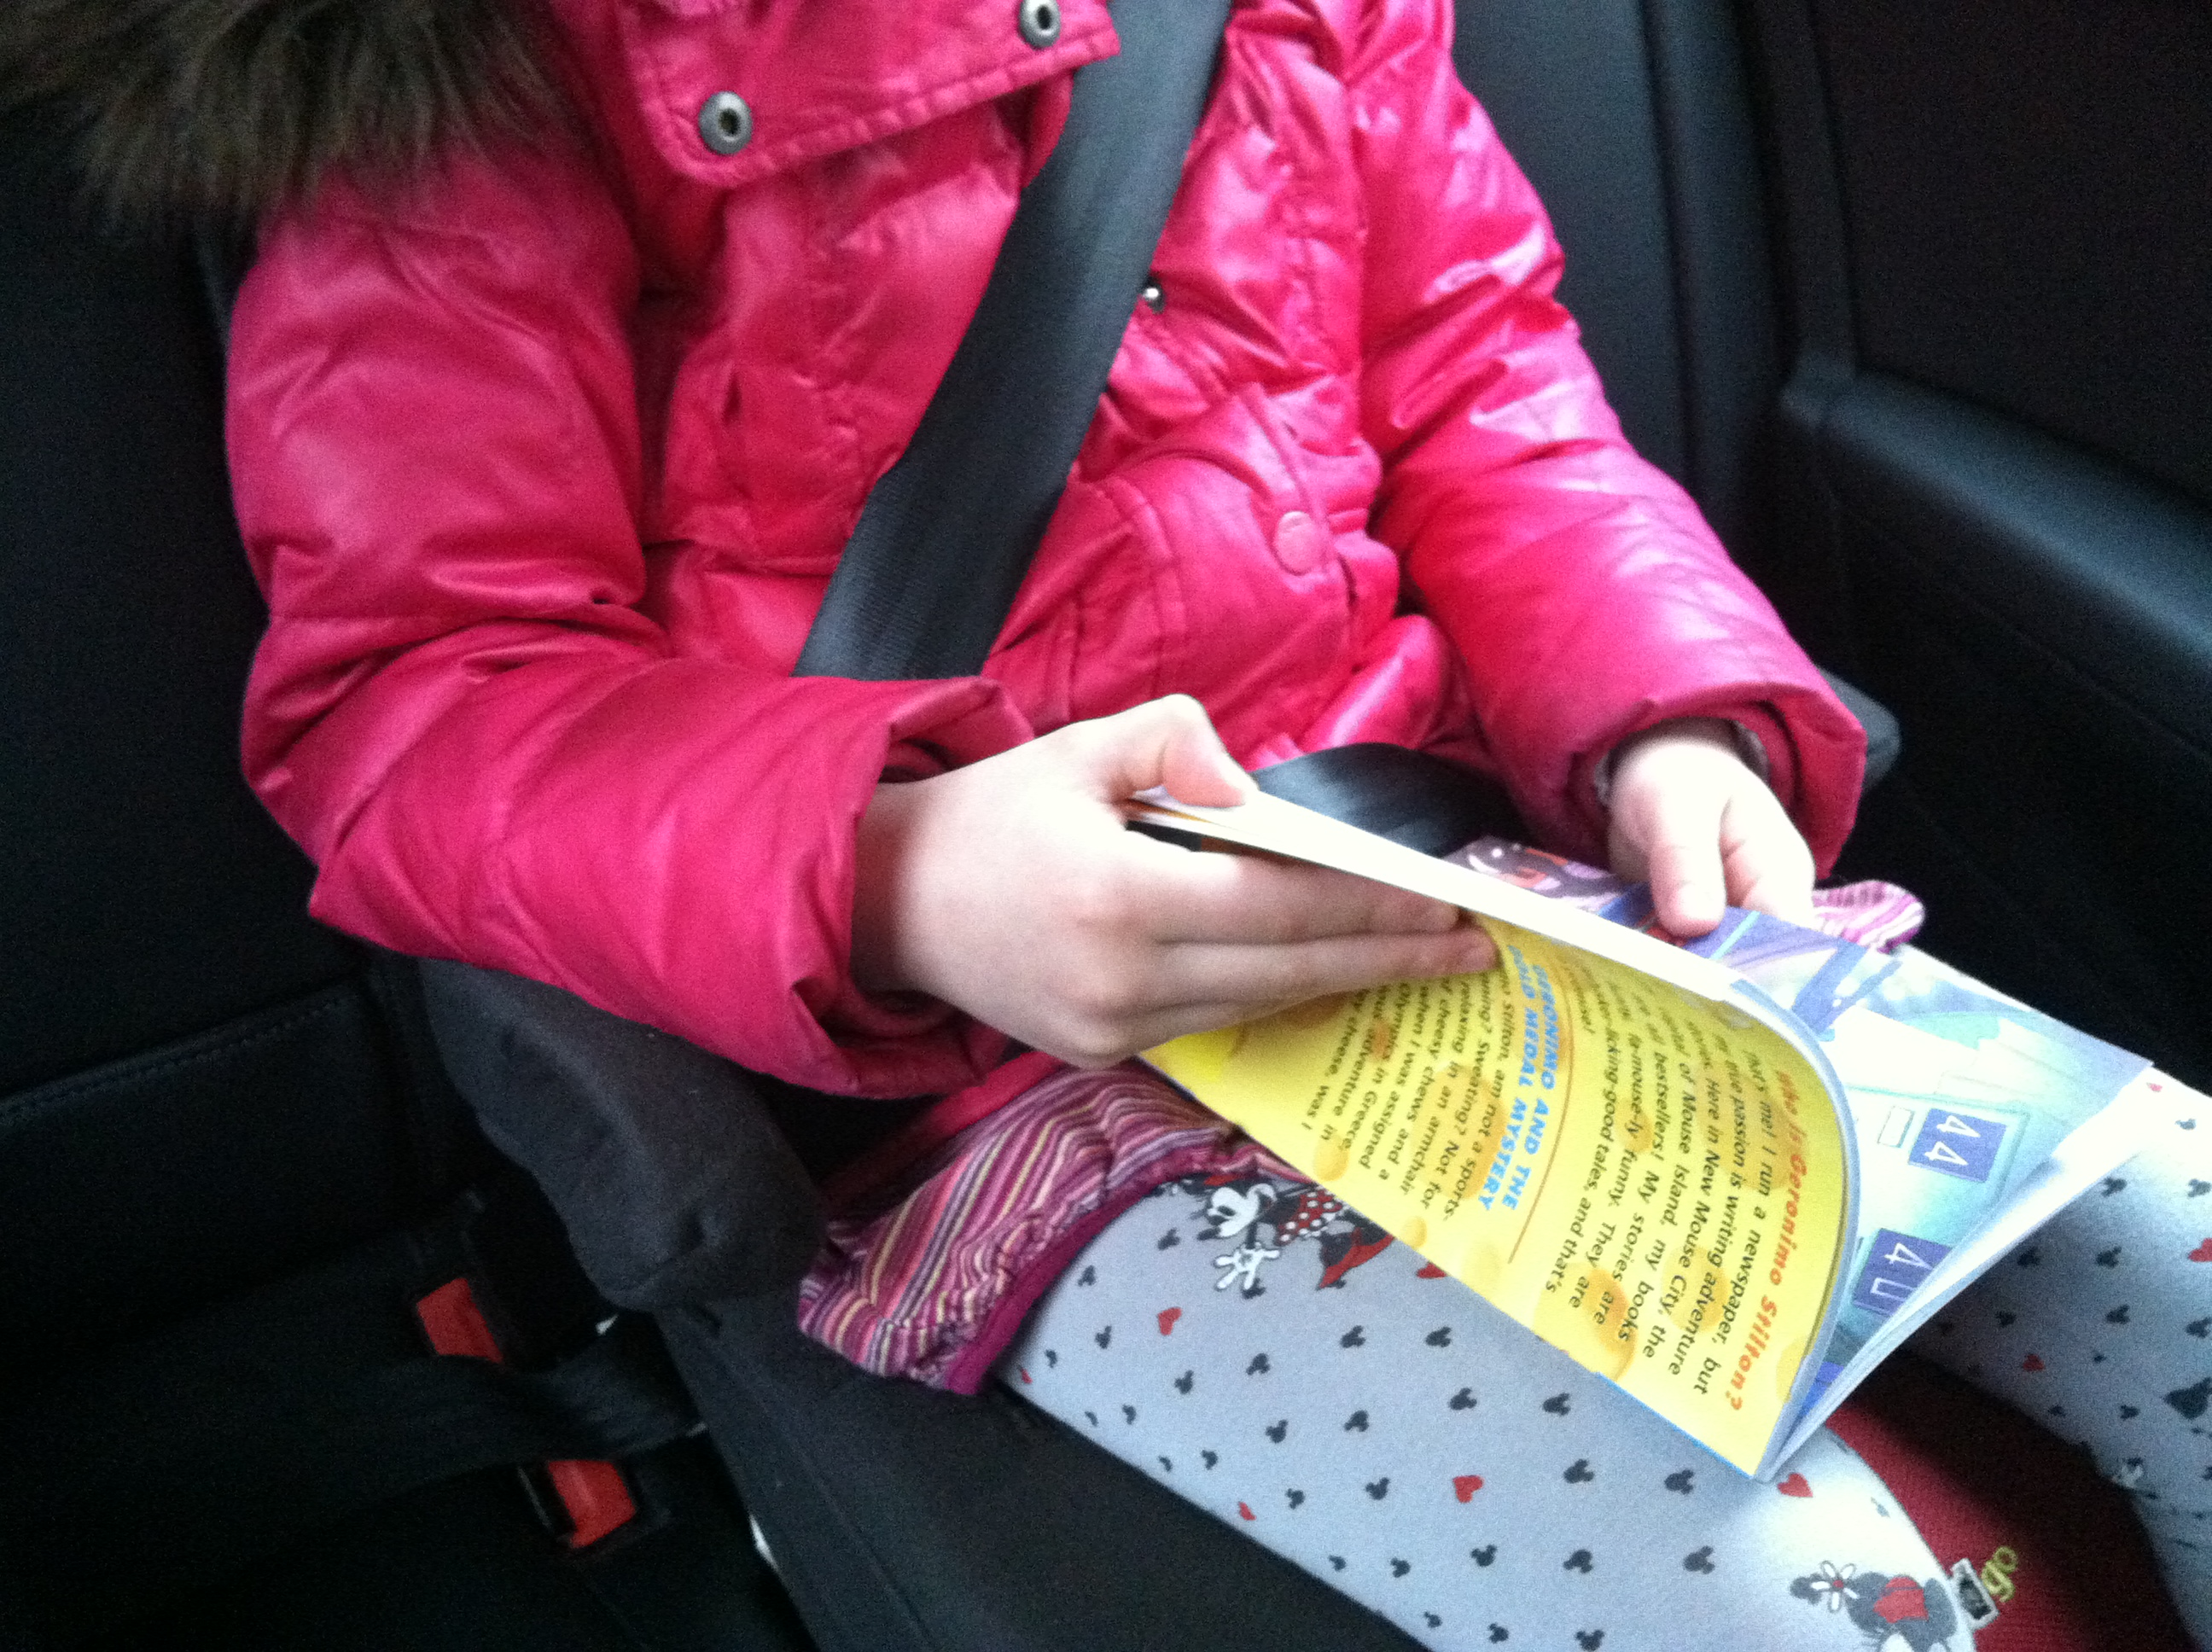 A stable, drama-free ride means you can read your favorite Geronimo Stilton books while Mom drives.